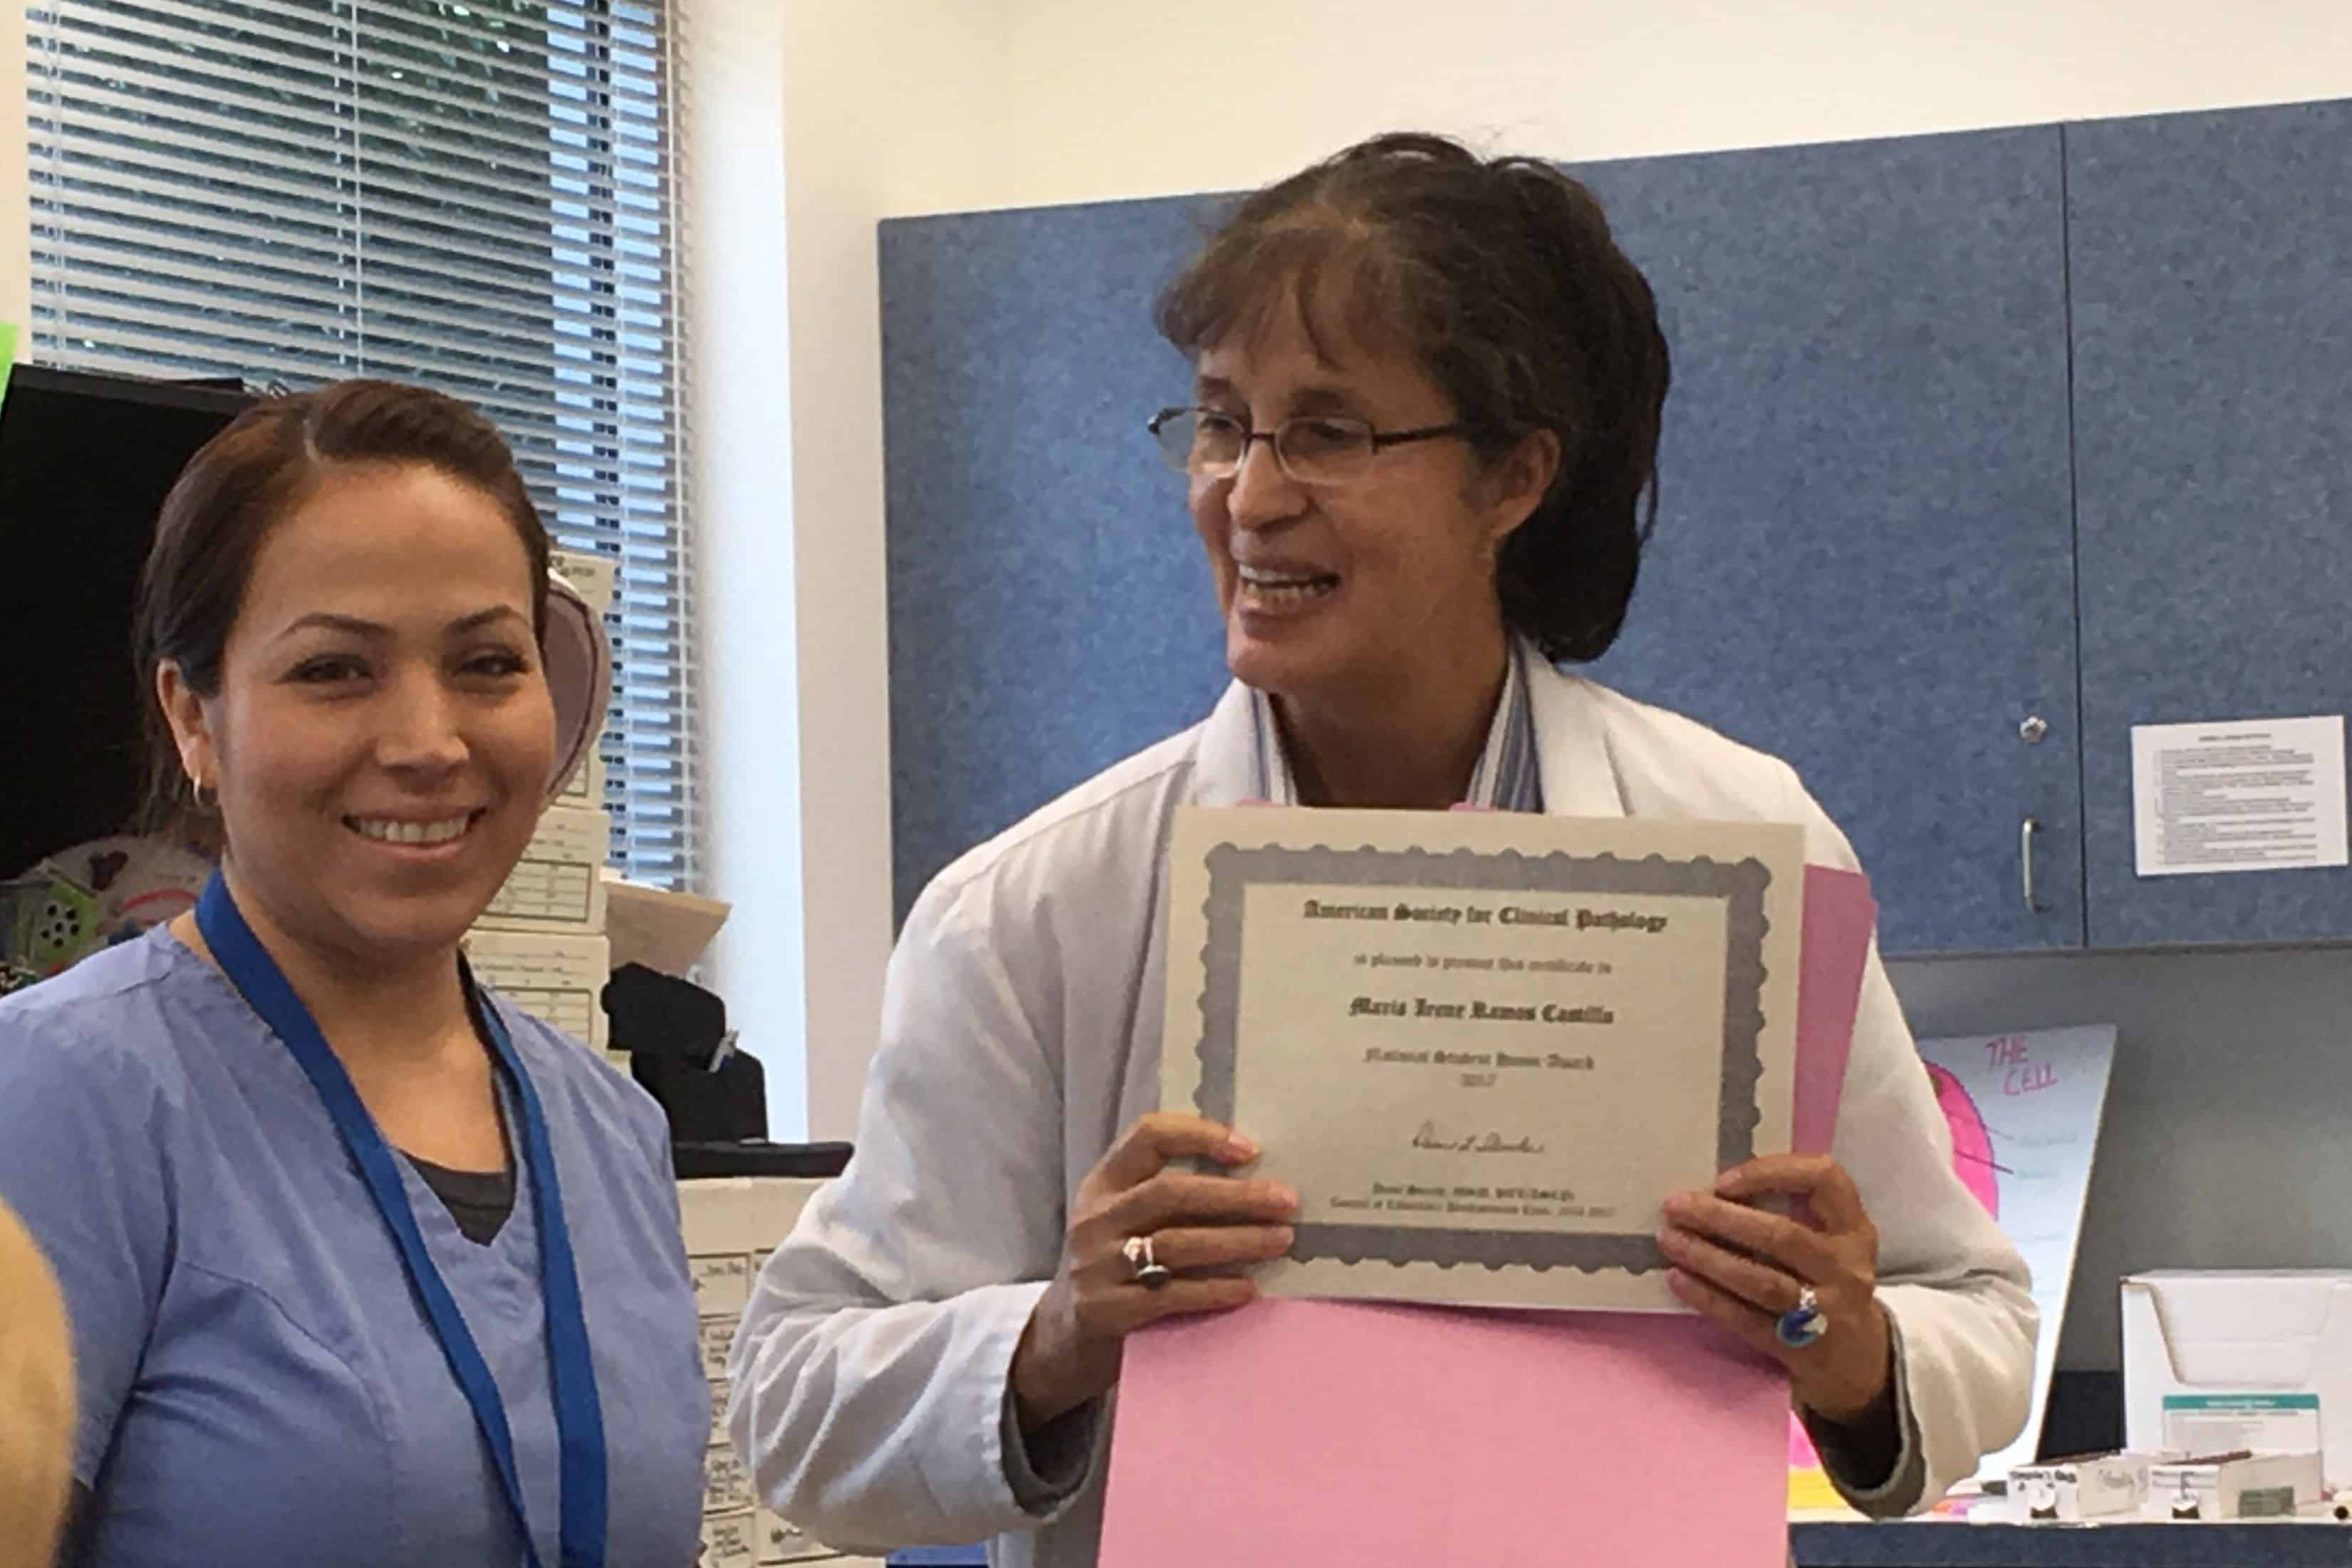 Pembroke Pines Histotechnology Student Receives Honor Award